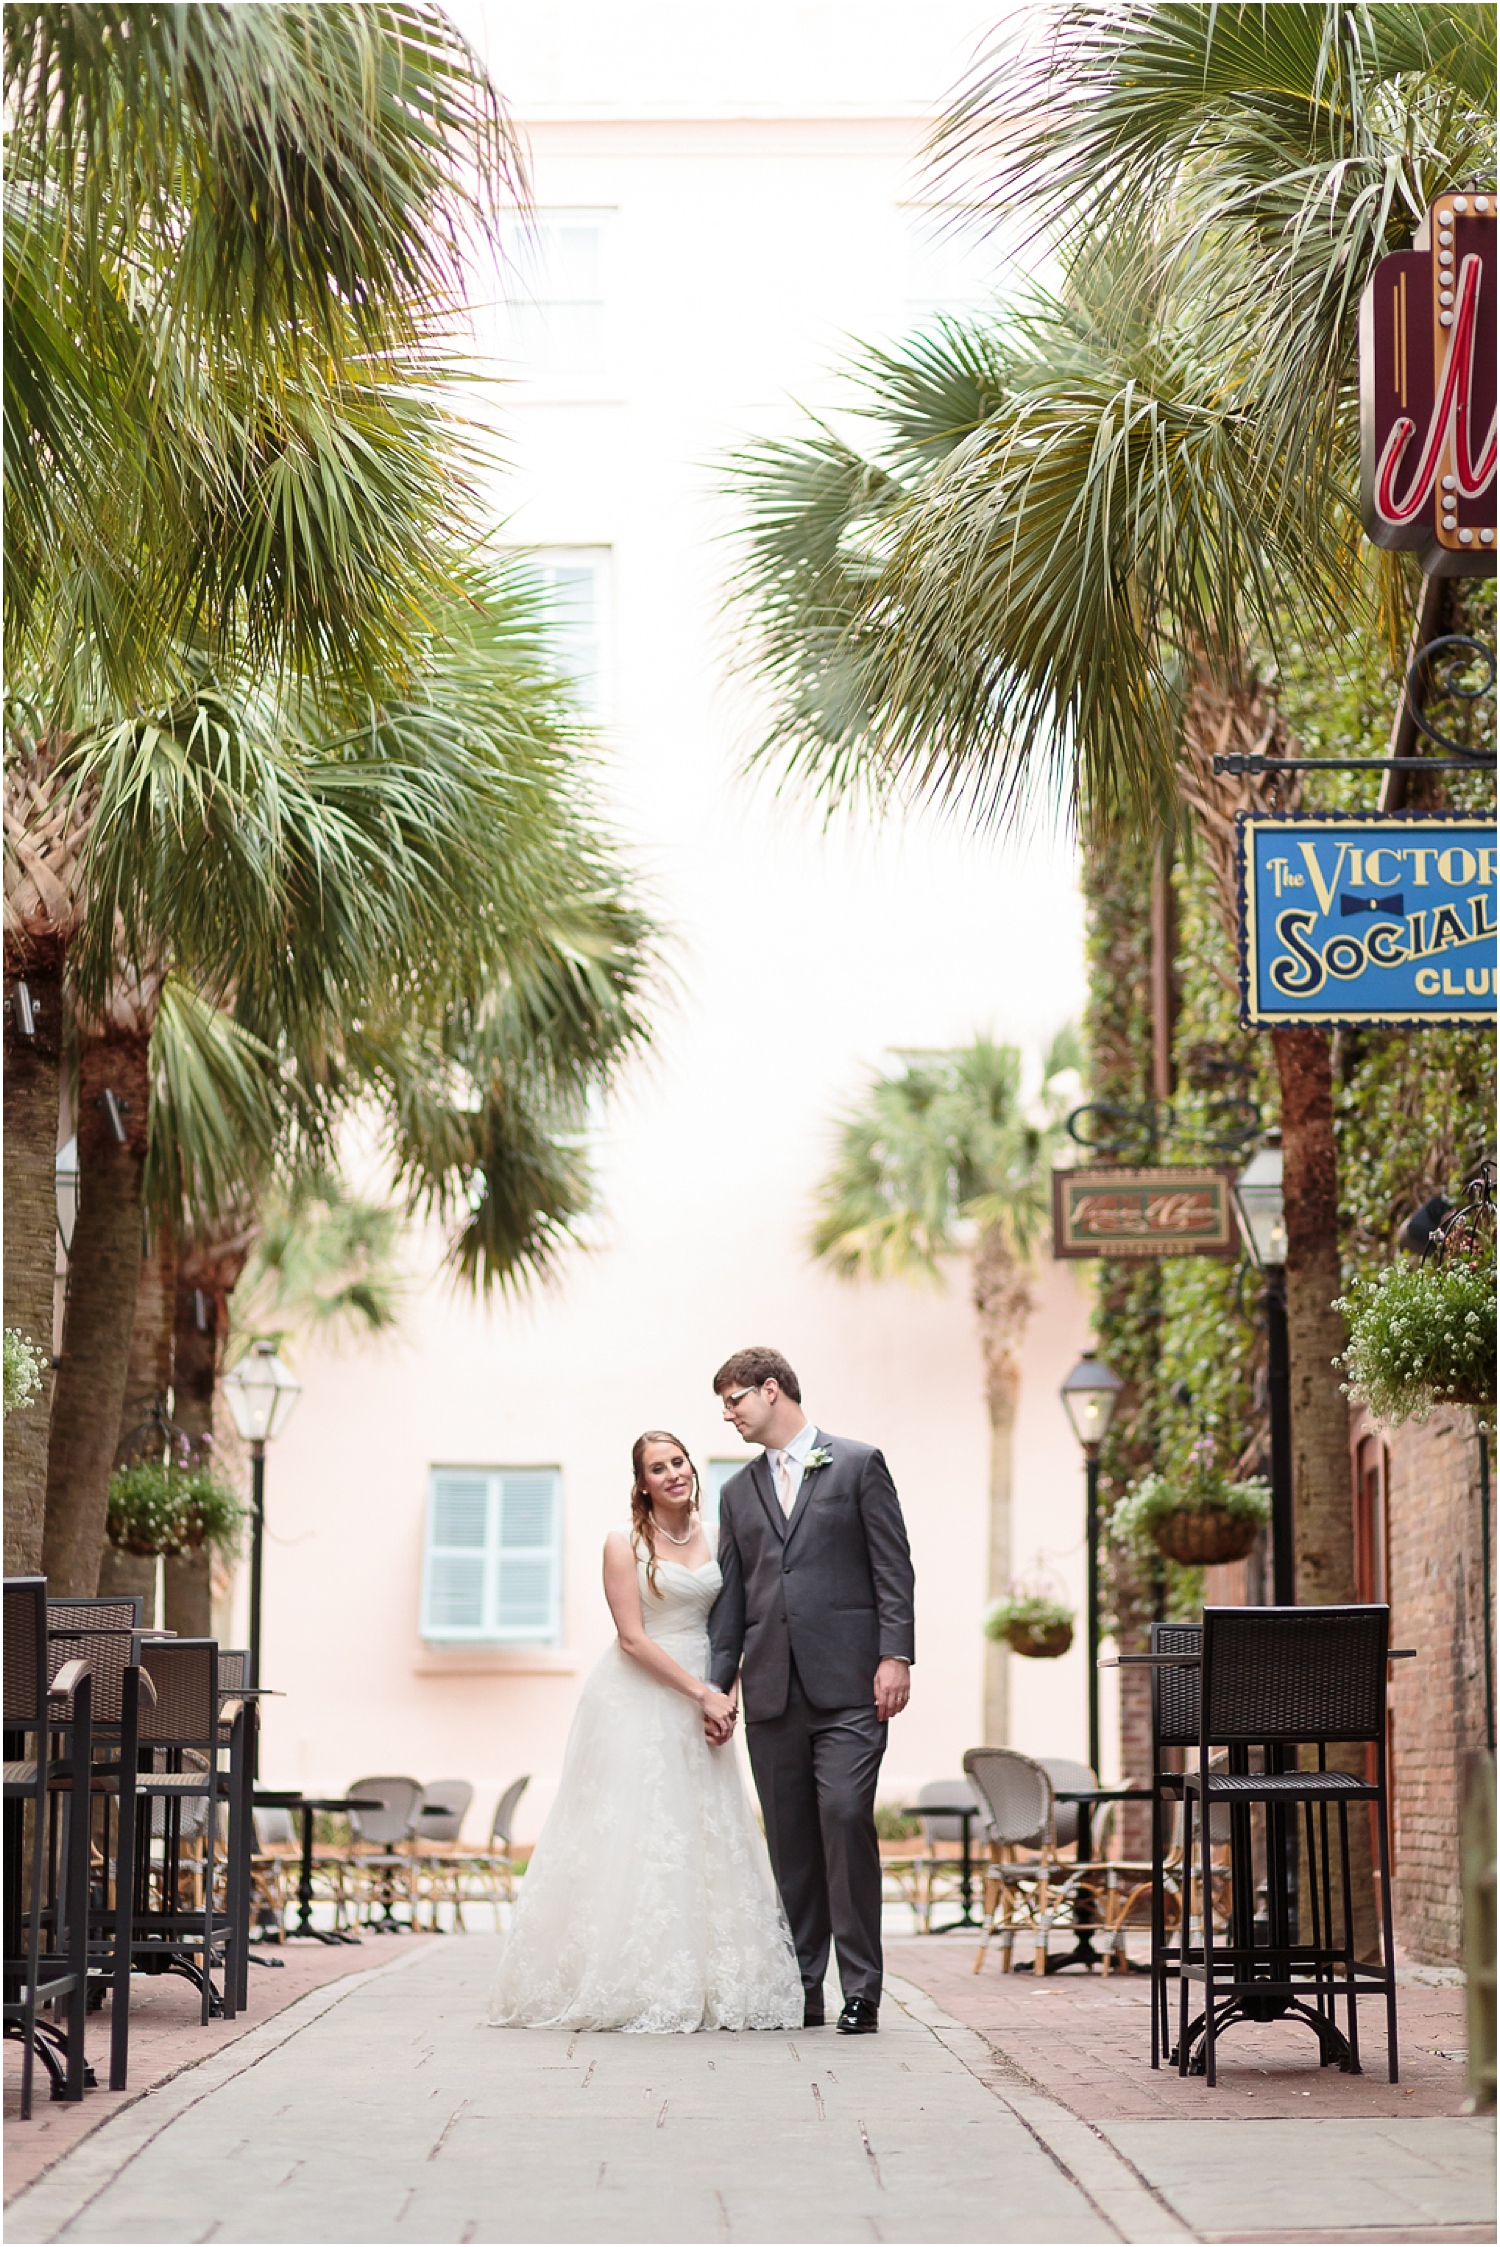 20150425-Charleston-Meagan-Phillip-527_blog.jpg